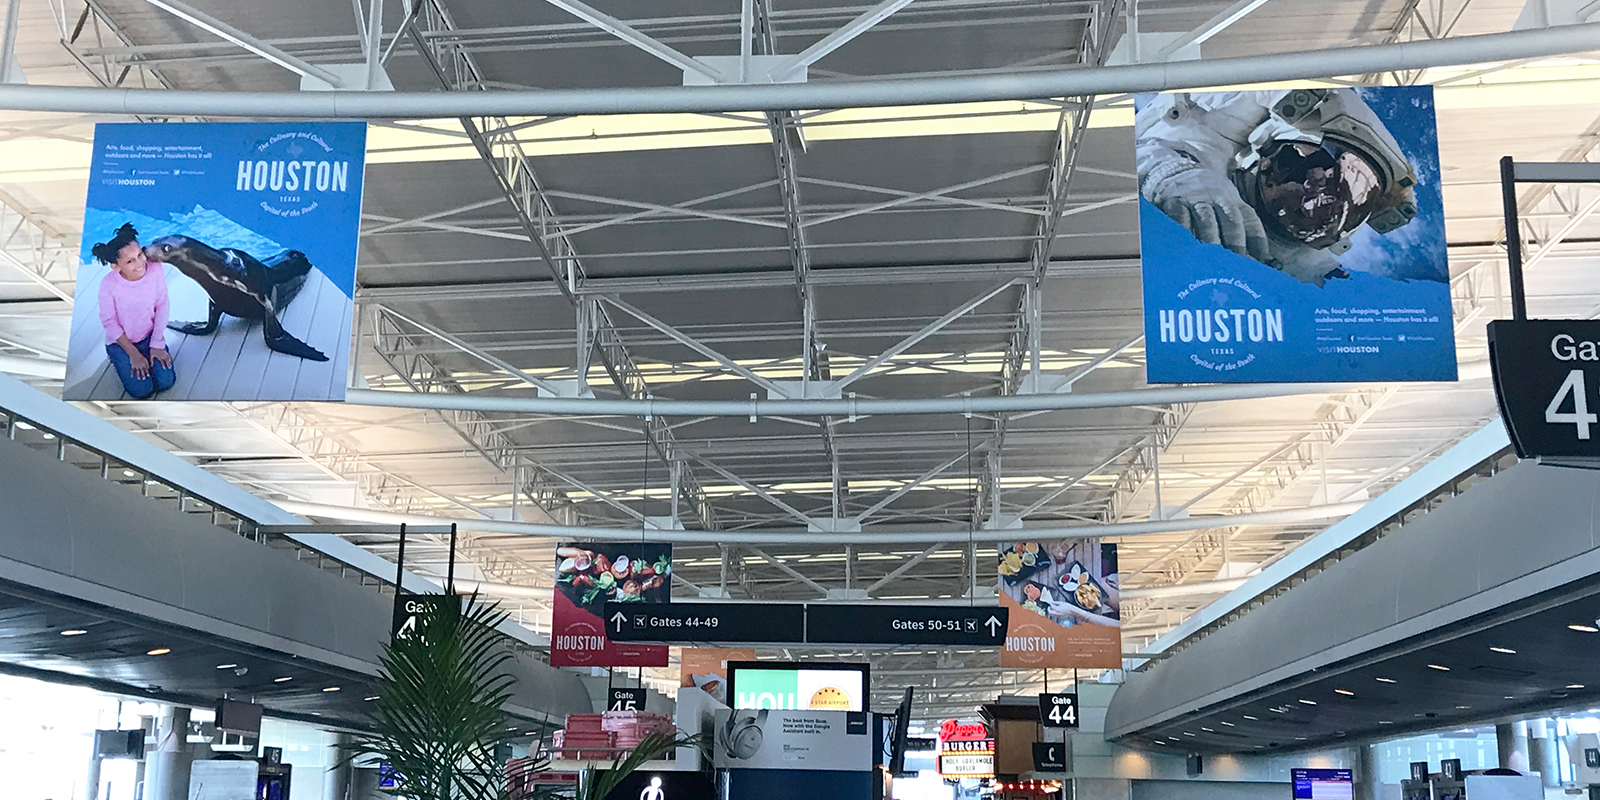 Houston Airports Hanging Banners